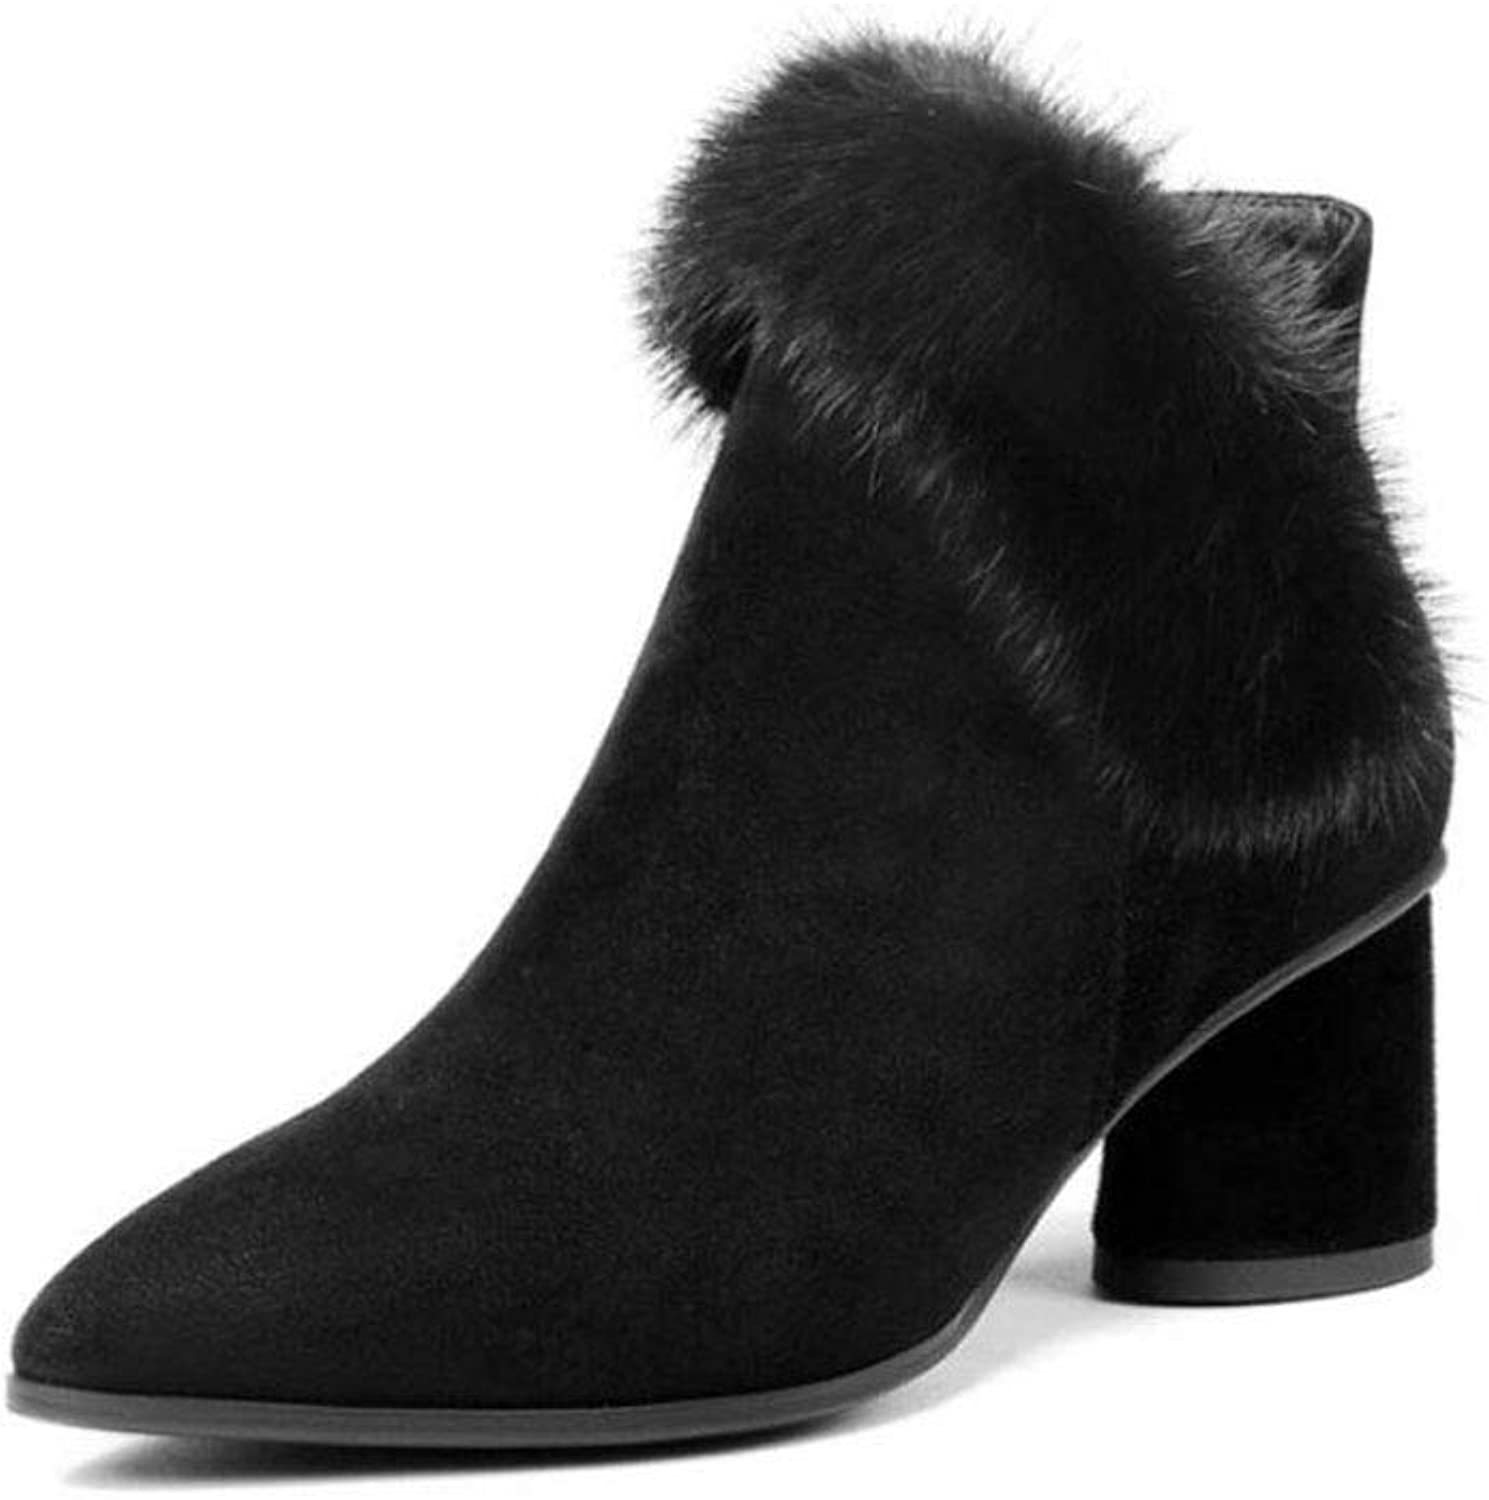 Women's Bootie, Autumn Winter Womens shoes Simple and Comfortable Booties Pointed Thick with High-Heeled Temperament Ladies Boots (color   Black, Size   38)